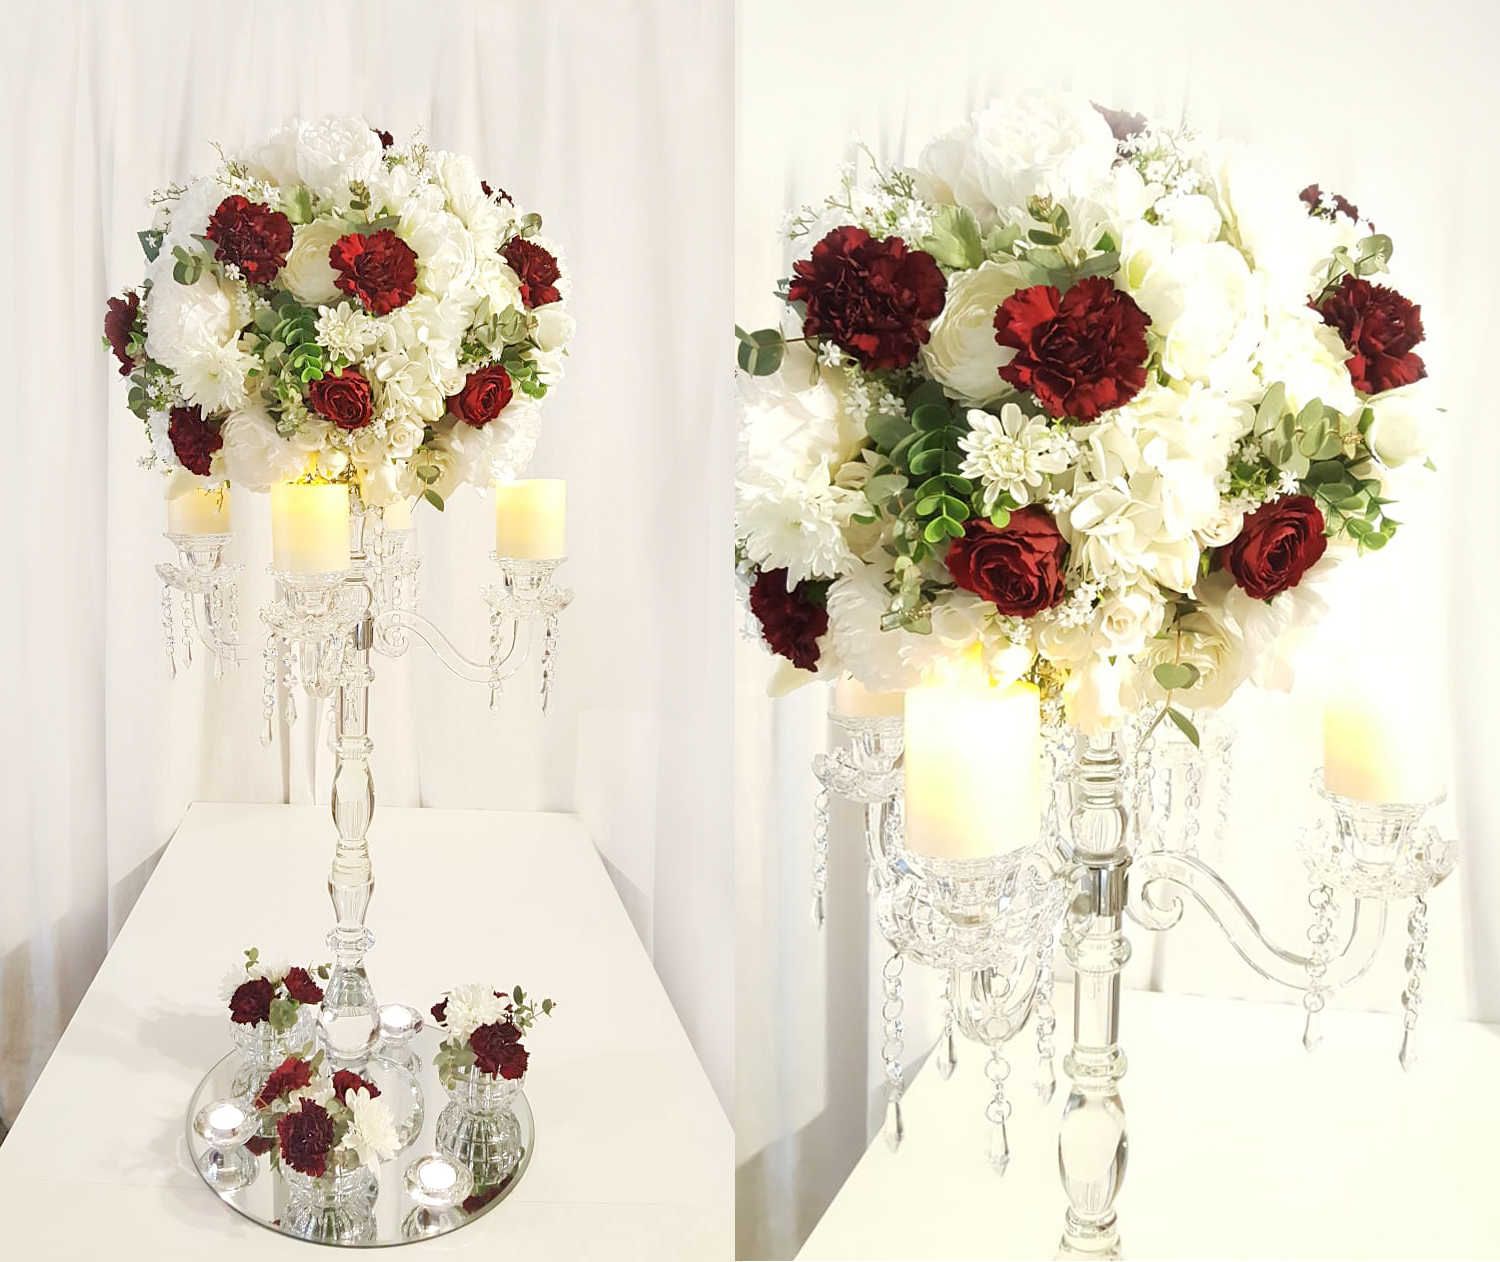 Wedding Centerpiece Hire - Wedding Decorations By Naz